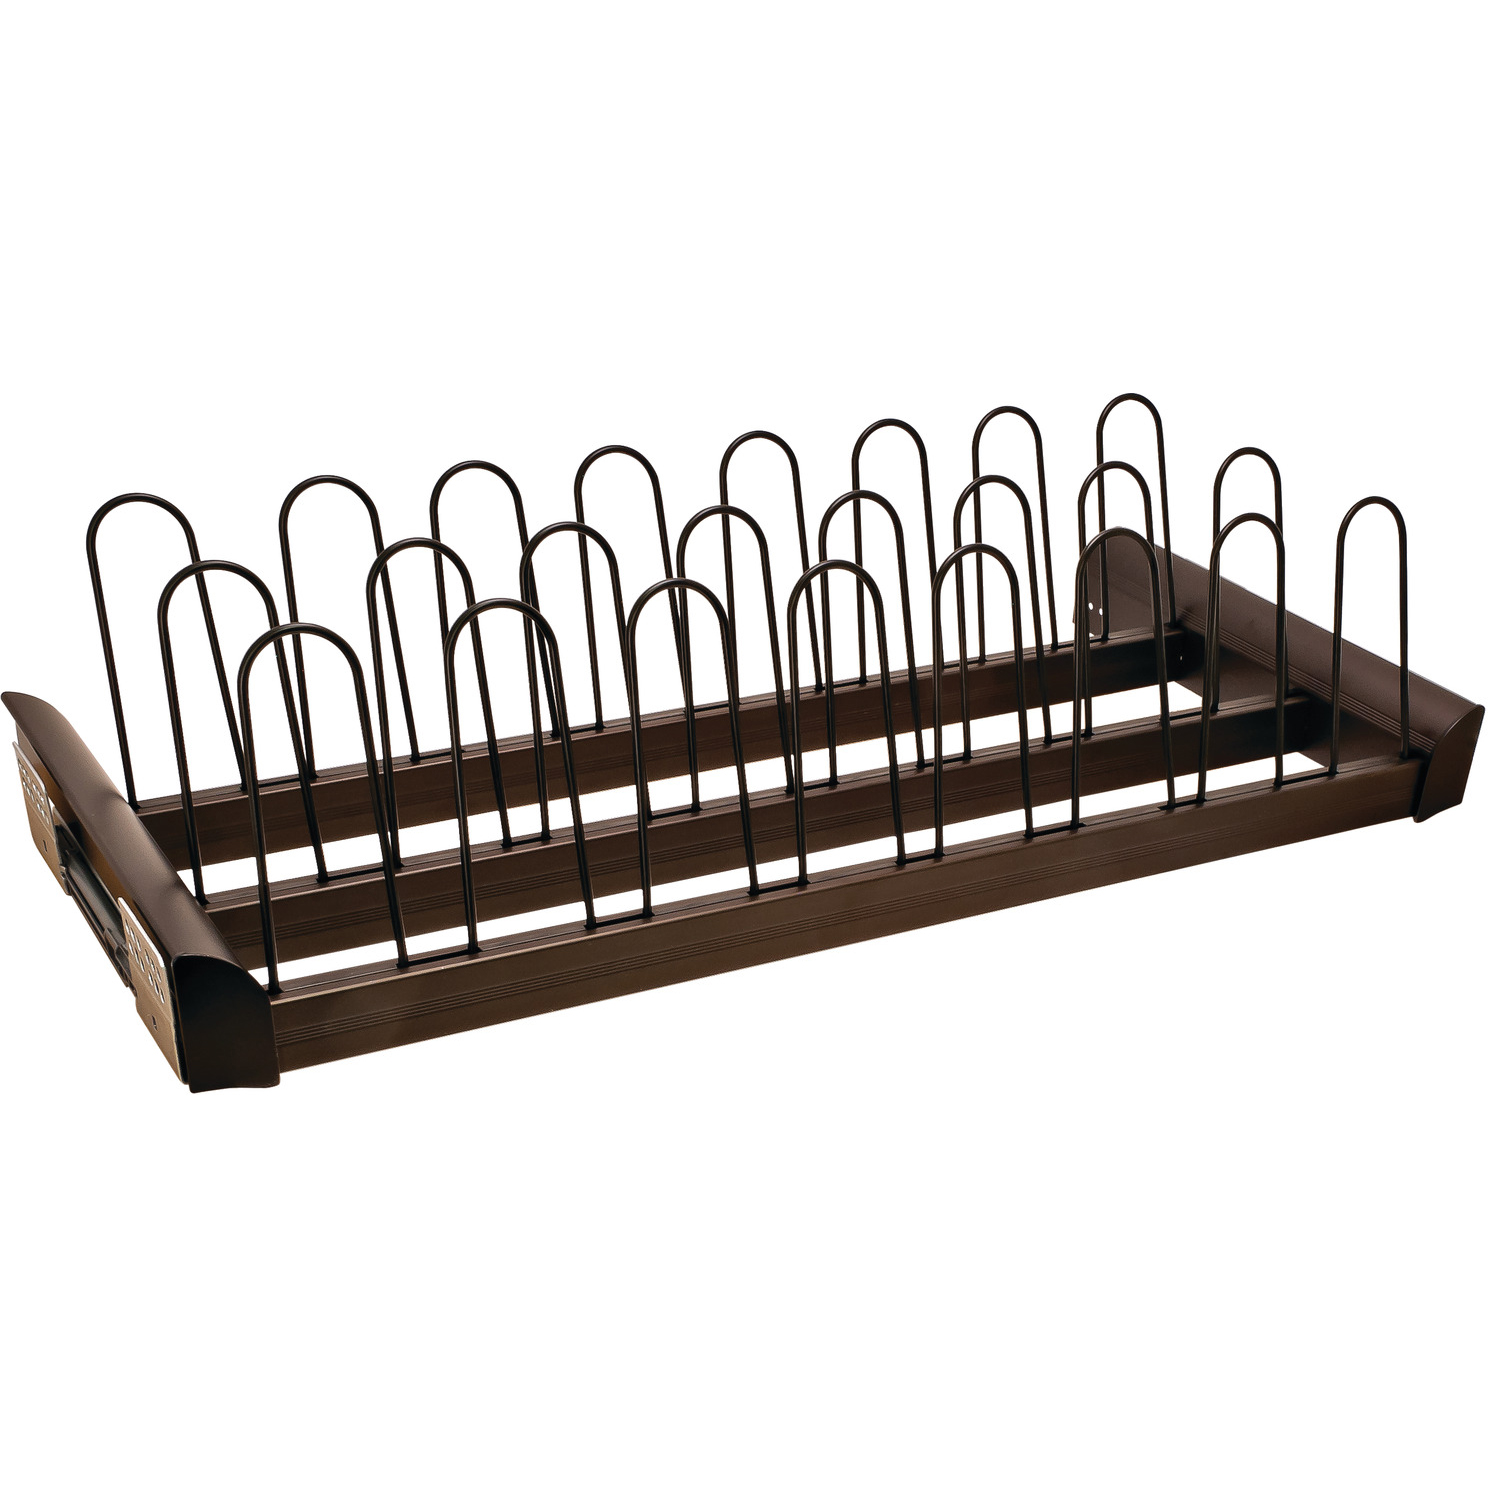 Bronze - Shoe Organizer 18 Inches